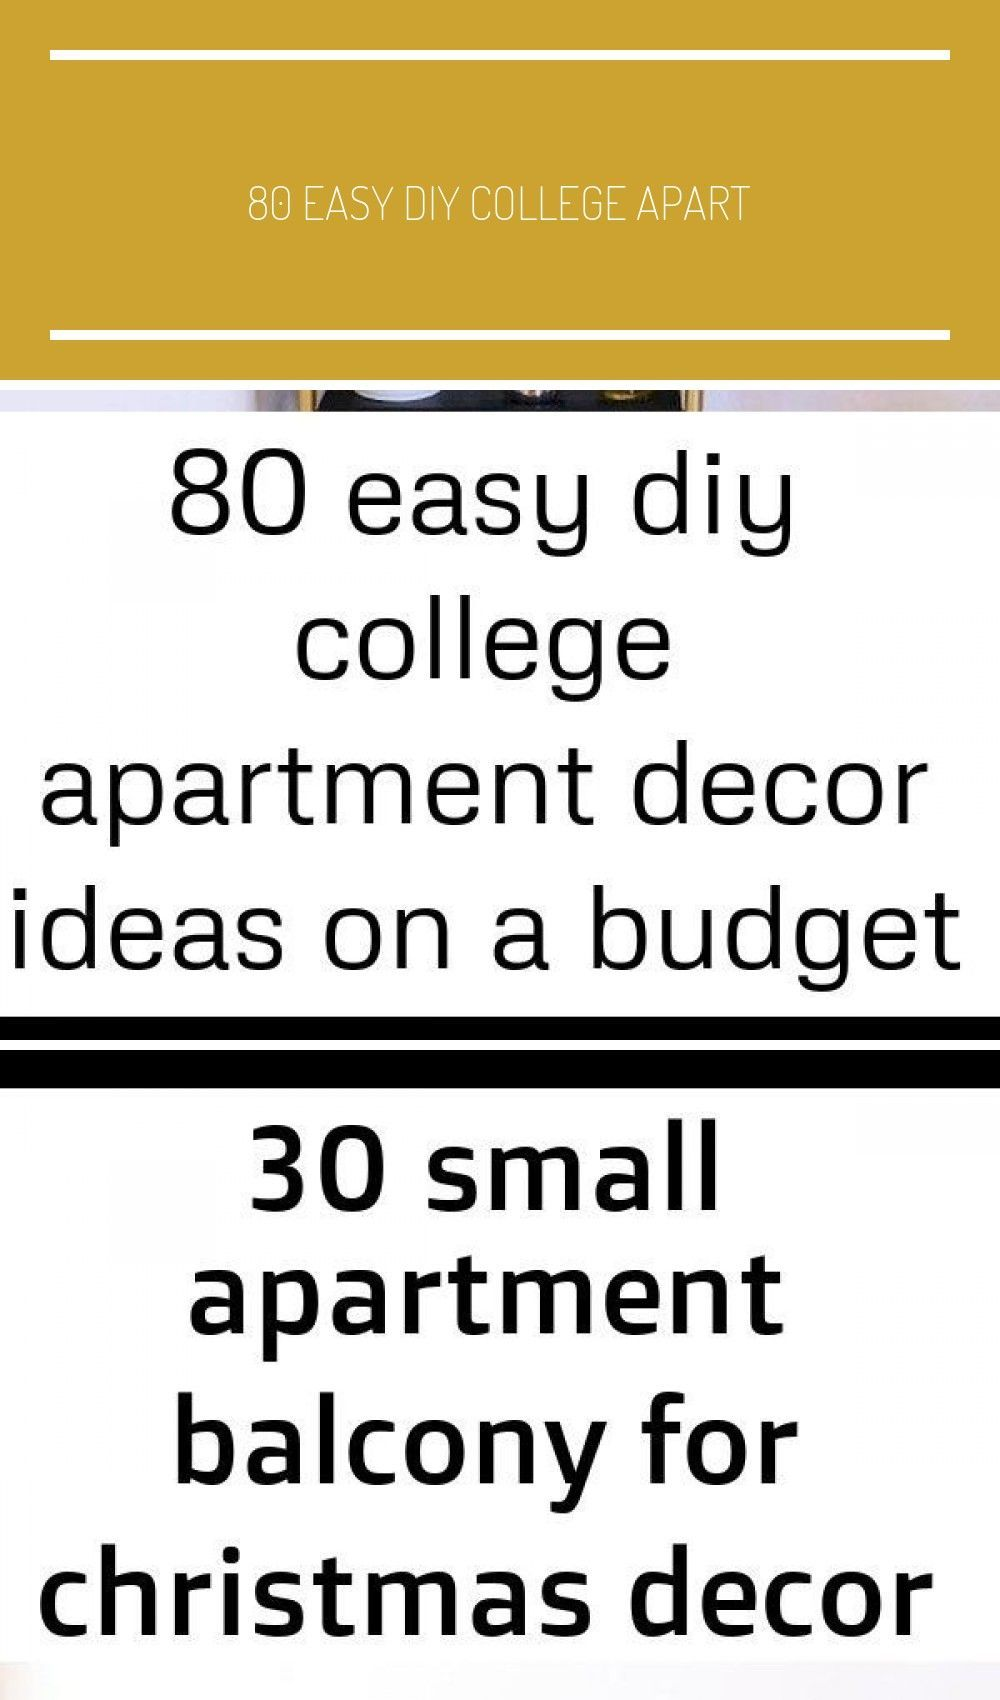 80 easy diy college apartment decor ideas on a budget 2 #smallapartmentchristmasdecor But with coffee and tea apartment patio decorating ideas | christmas decorating ideas for apartment balconies decorating how to ... 80+ Best Small Apartment Balcony Decorating Ideas #apartmenttherapy #apartmentgardening #apartmentdecor #Christmas decorations apartment balcony #smallapartmentchristmasdecor 80 easy diy college apartment decor ideas on a budget 2 #smallapartmentchristmasdecor But with coffee and t #smallapartmentchristmasdecor